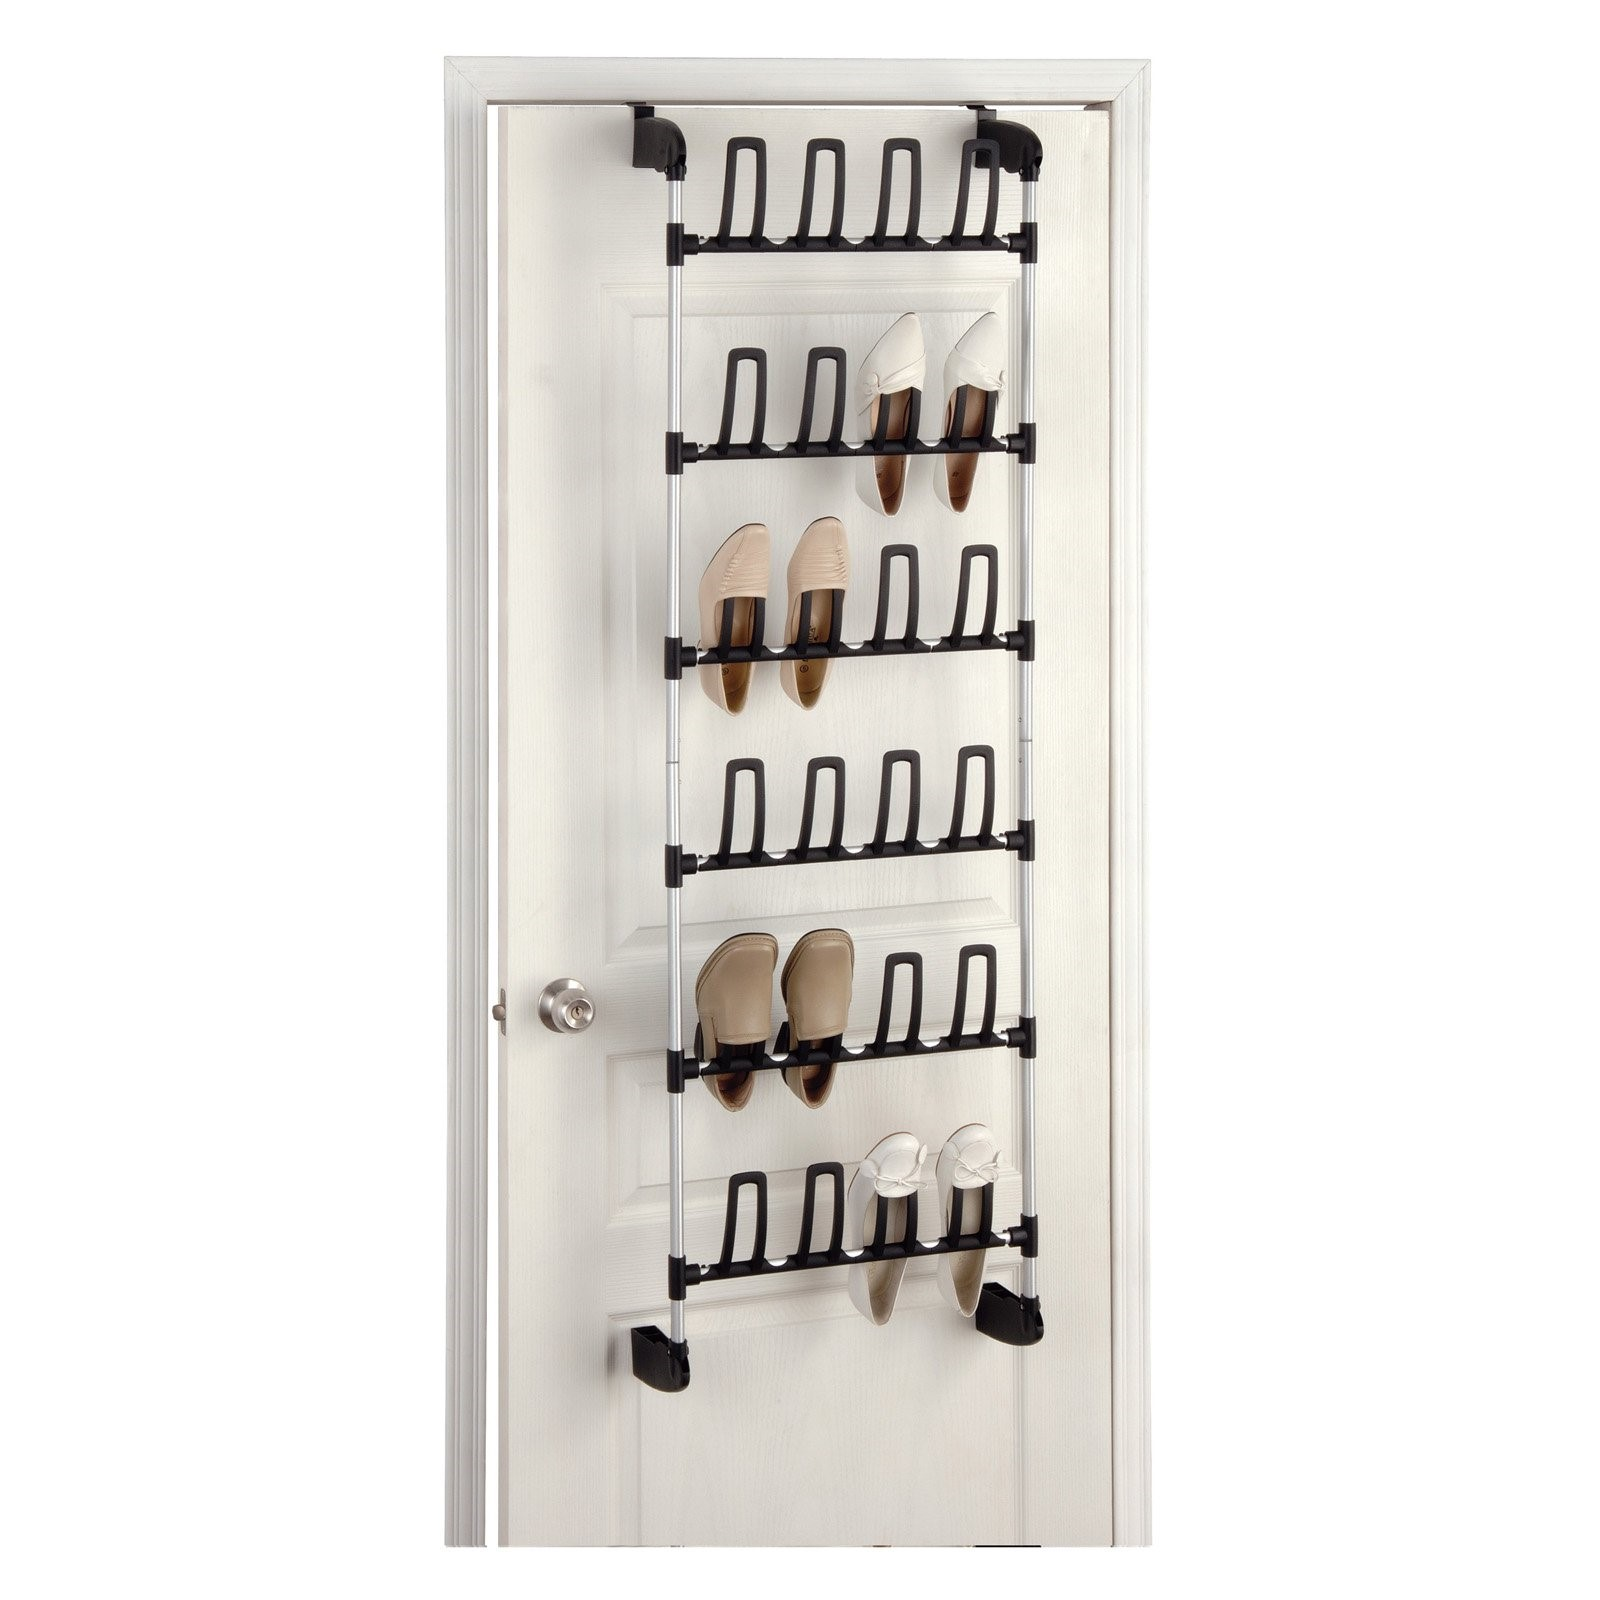 Organize It All Overdoor 12-Pair Shoe Rack by Organize It All